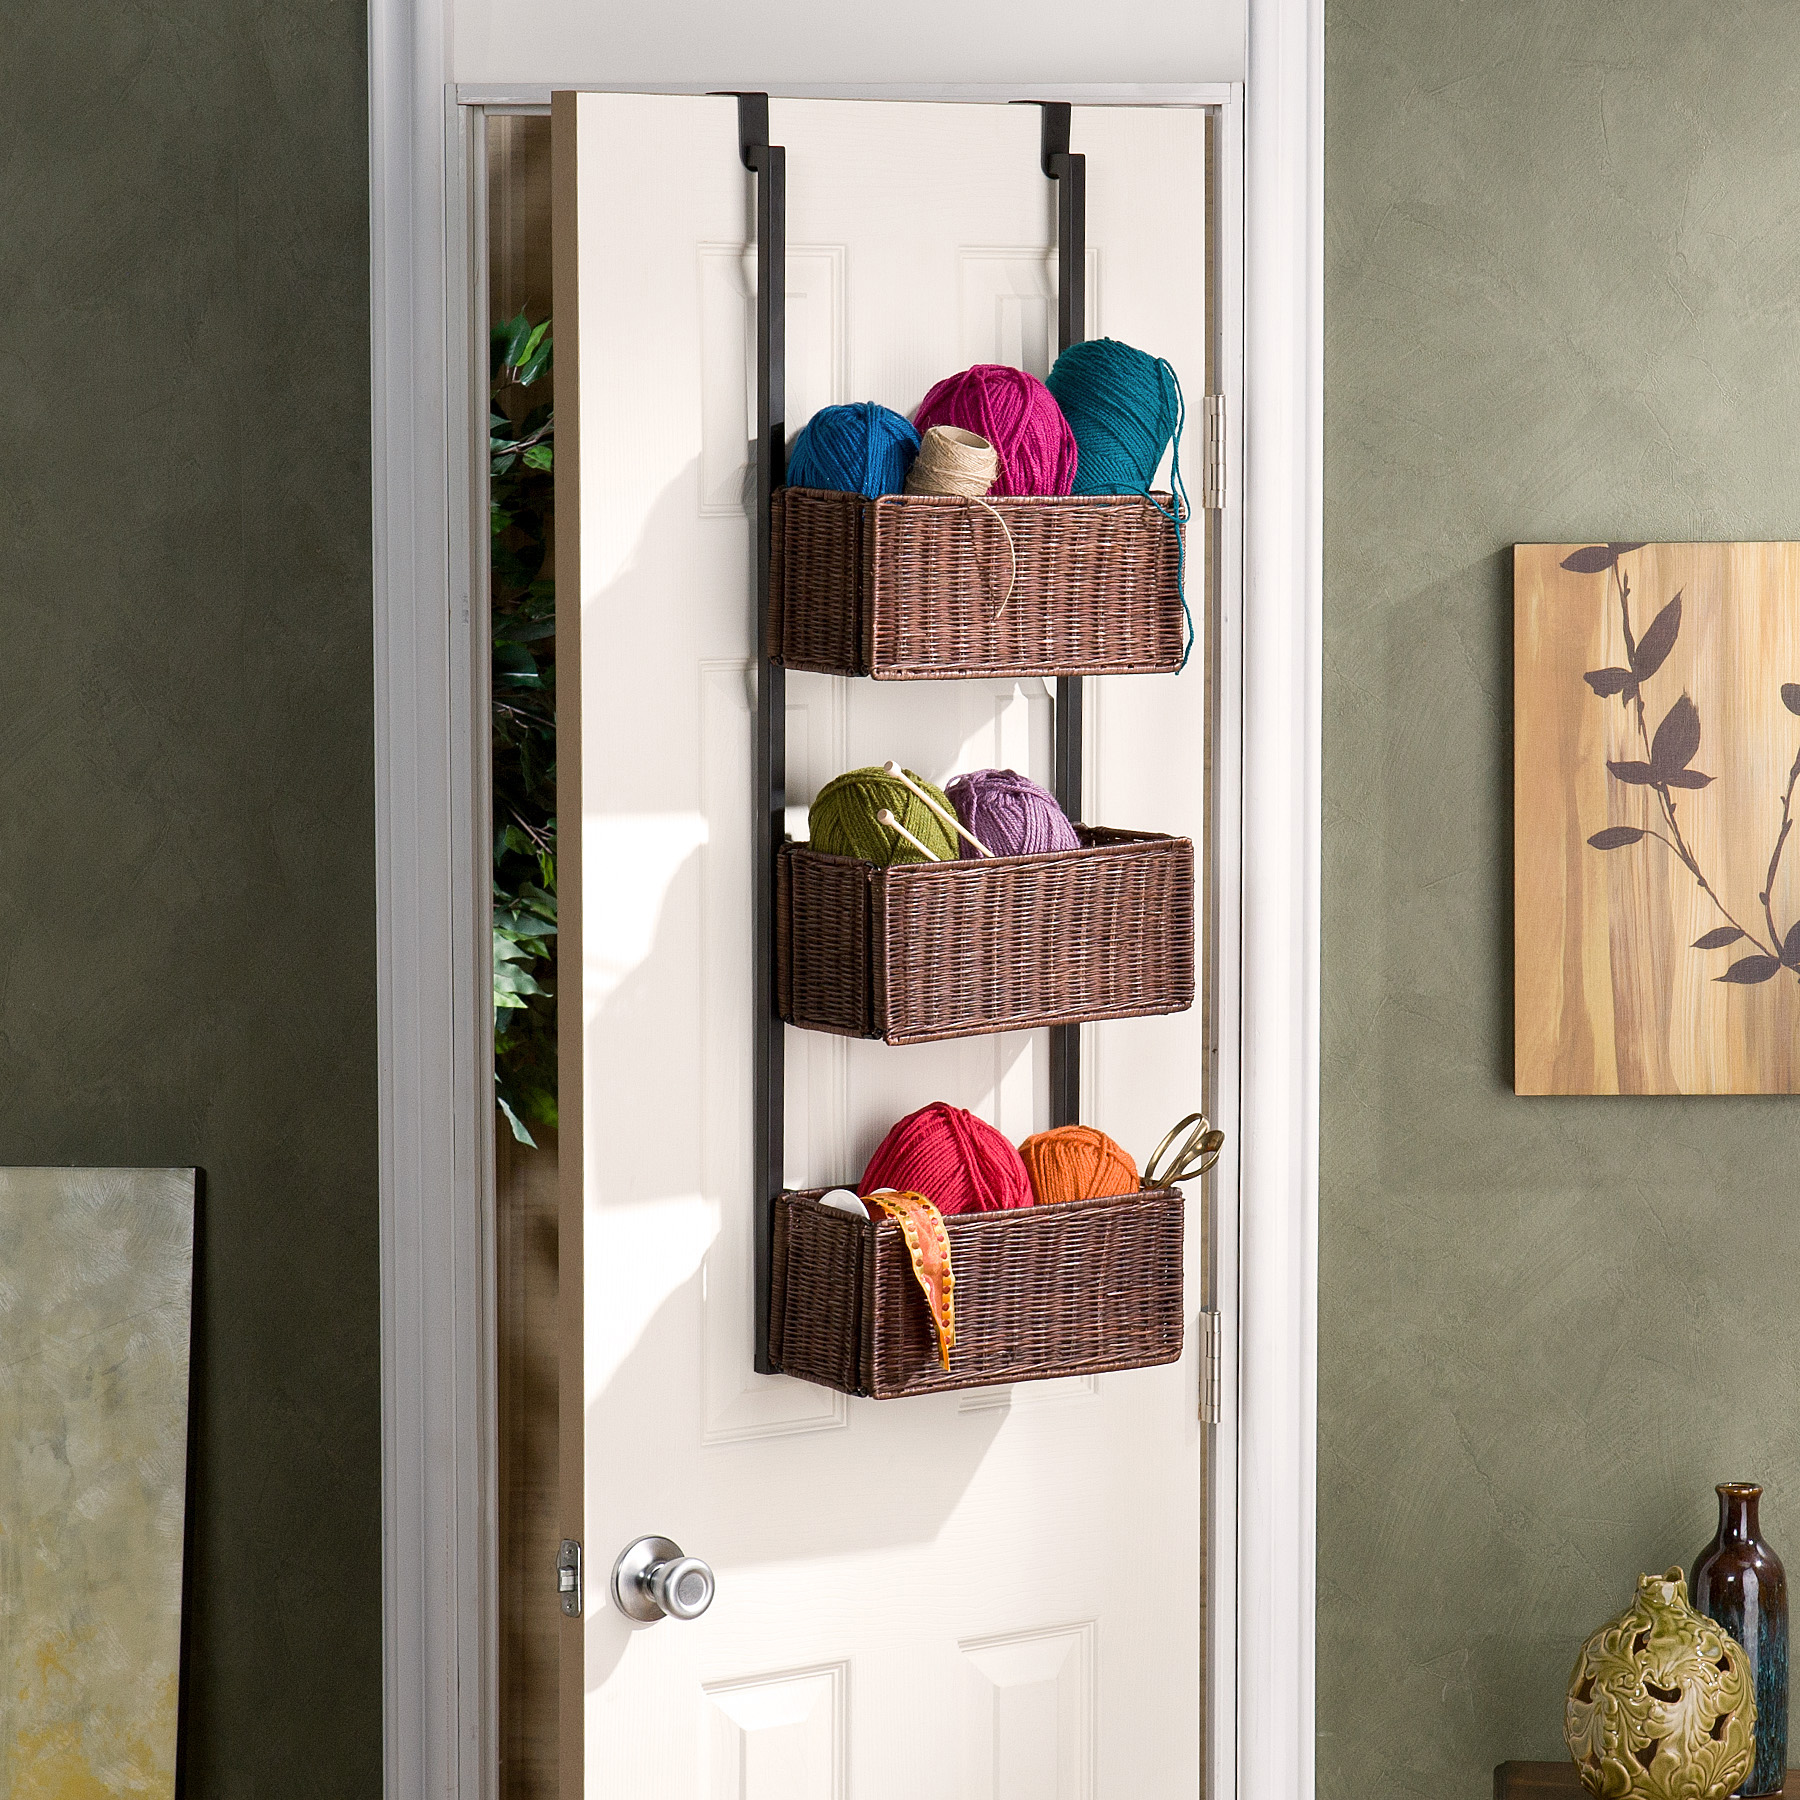 Over The Door 3 Tier Basket Storage   Espresso W/ Black